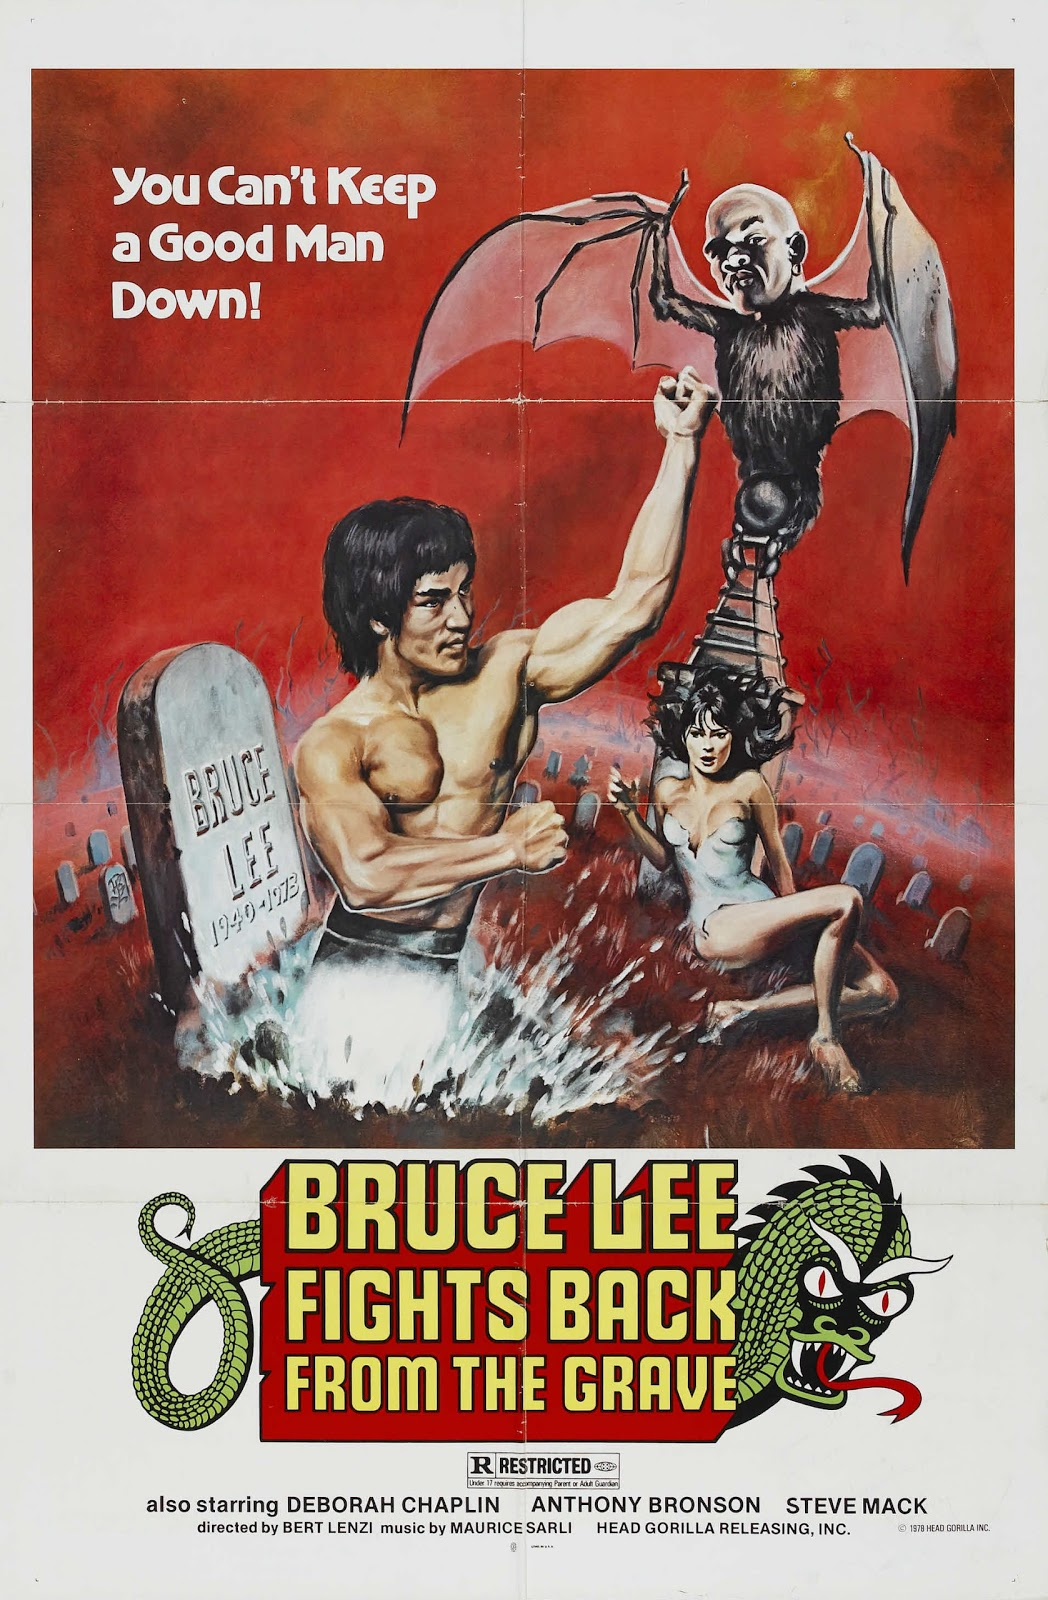 http://3.bp.blogspot.com/_ec_bXQZWE2E/TPXYRhllF0I/AAAAAAAAIMs/WHJKEEG-BY8/s1600/bruce_lee_fights_back_from_the_grave_poster_01.jpg